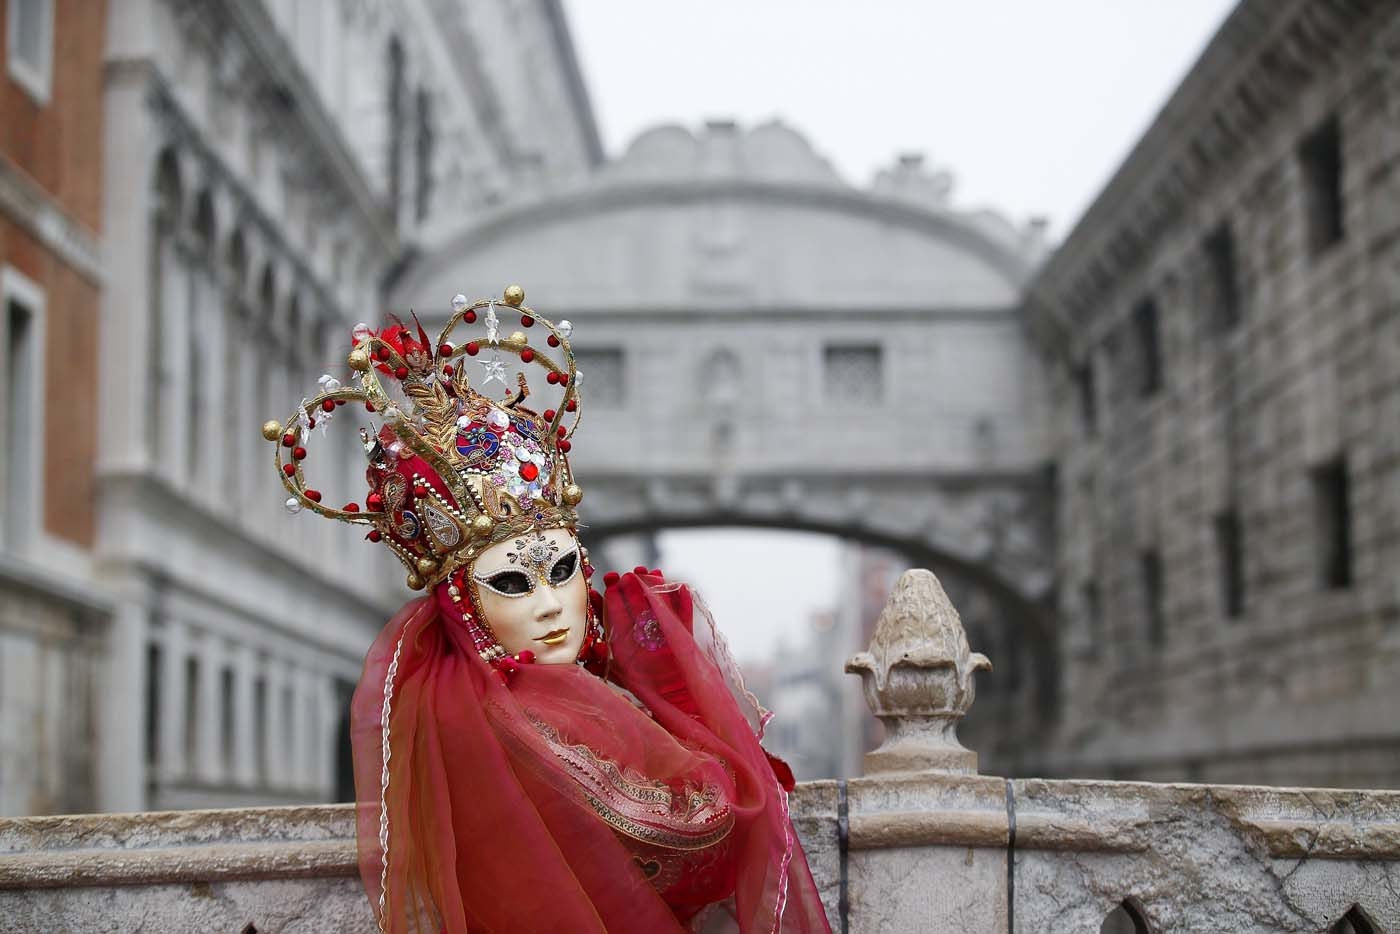 A masked reveller poses in front of the Ponte dei Sospiri (Bridge of Sighs) during the Venice Carnival January 30, 2016. REUTERS/Alessandro Bianchi